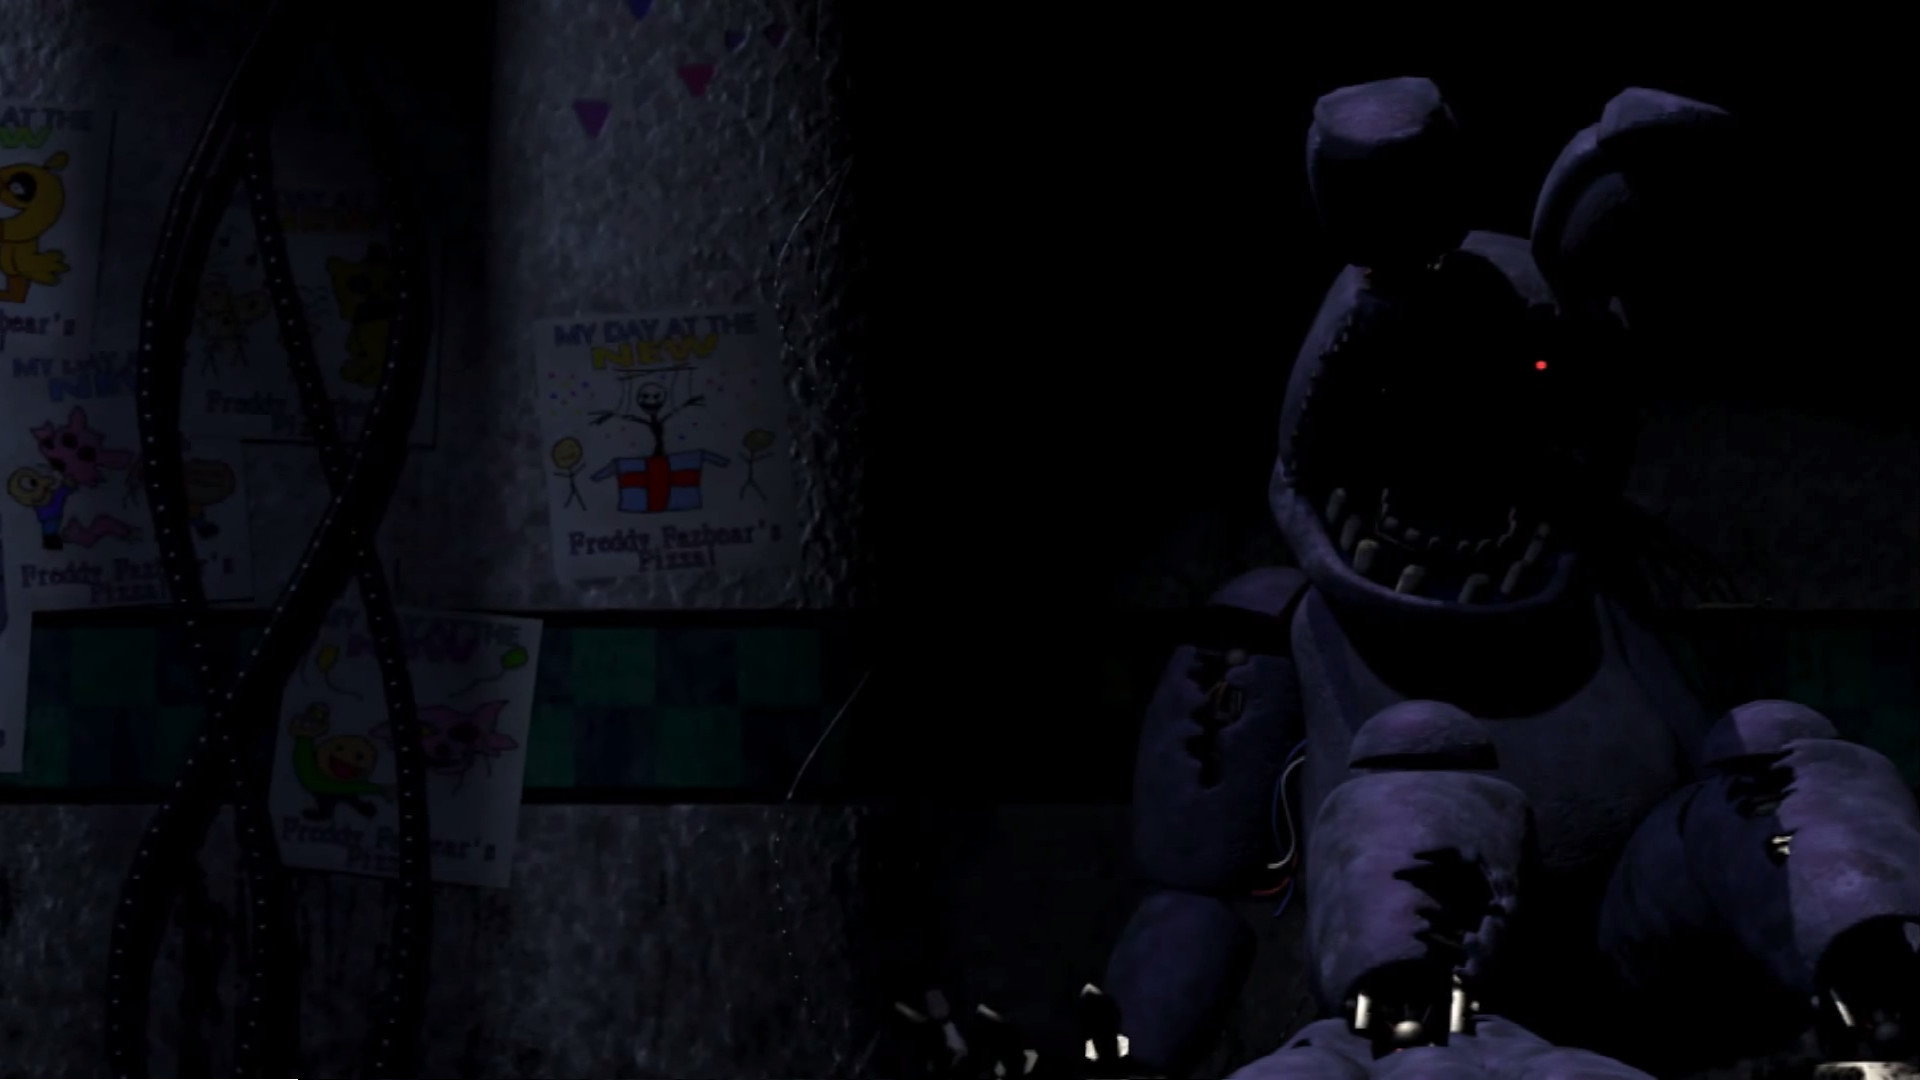 1920x1080 HDQ Cover Wonderful FNAF 4 Images HD Wallpapers